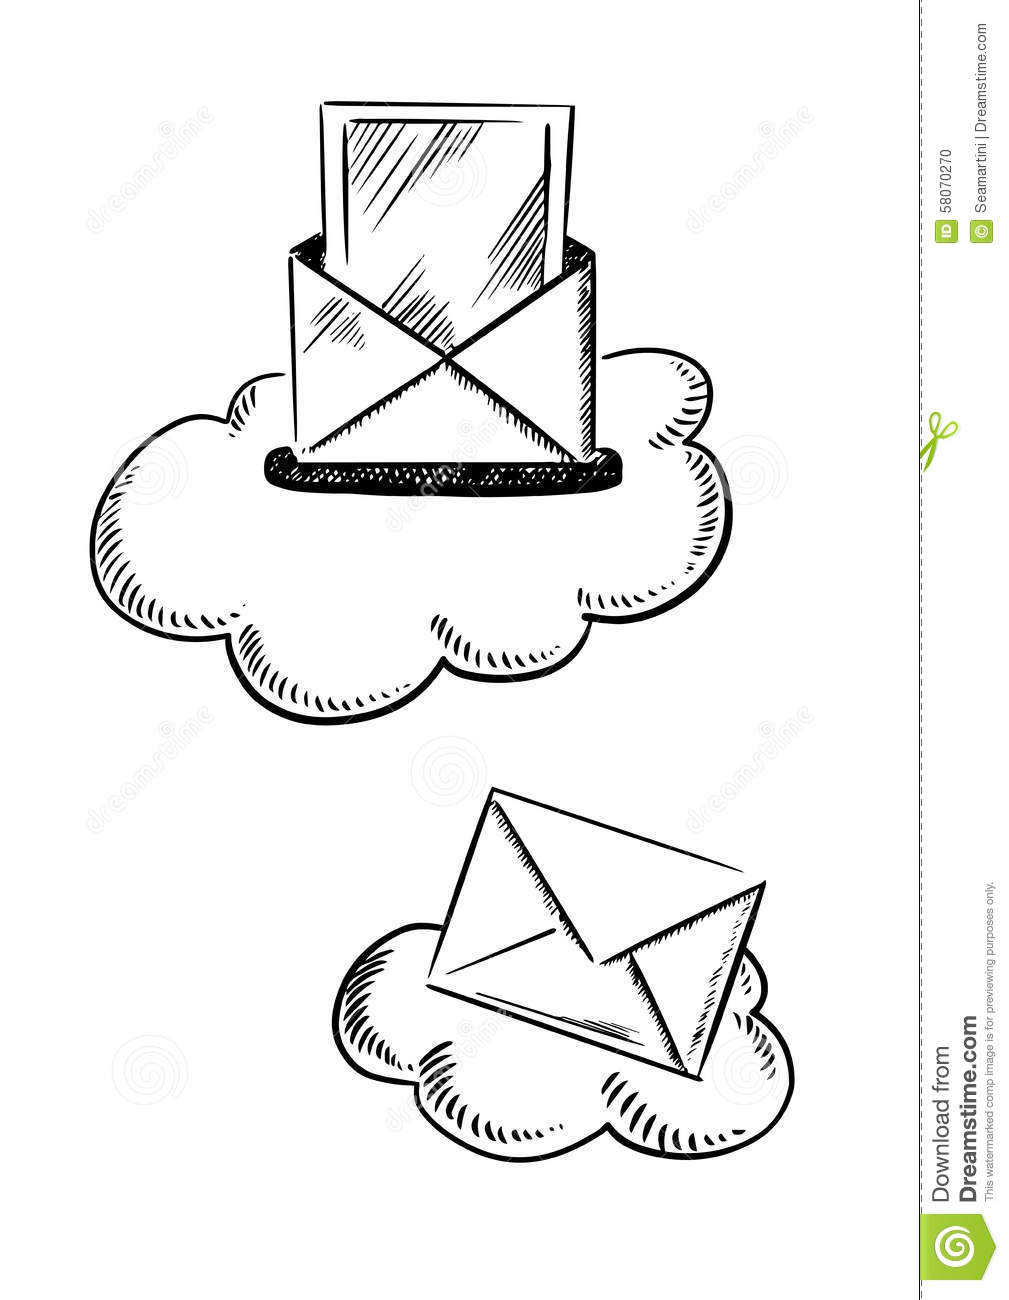 e mail symbols with letters and clouds